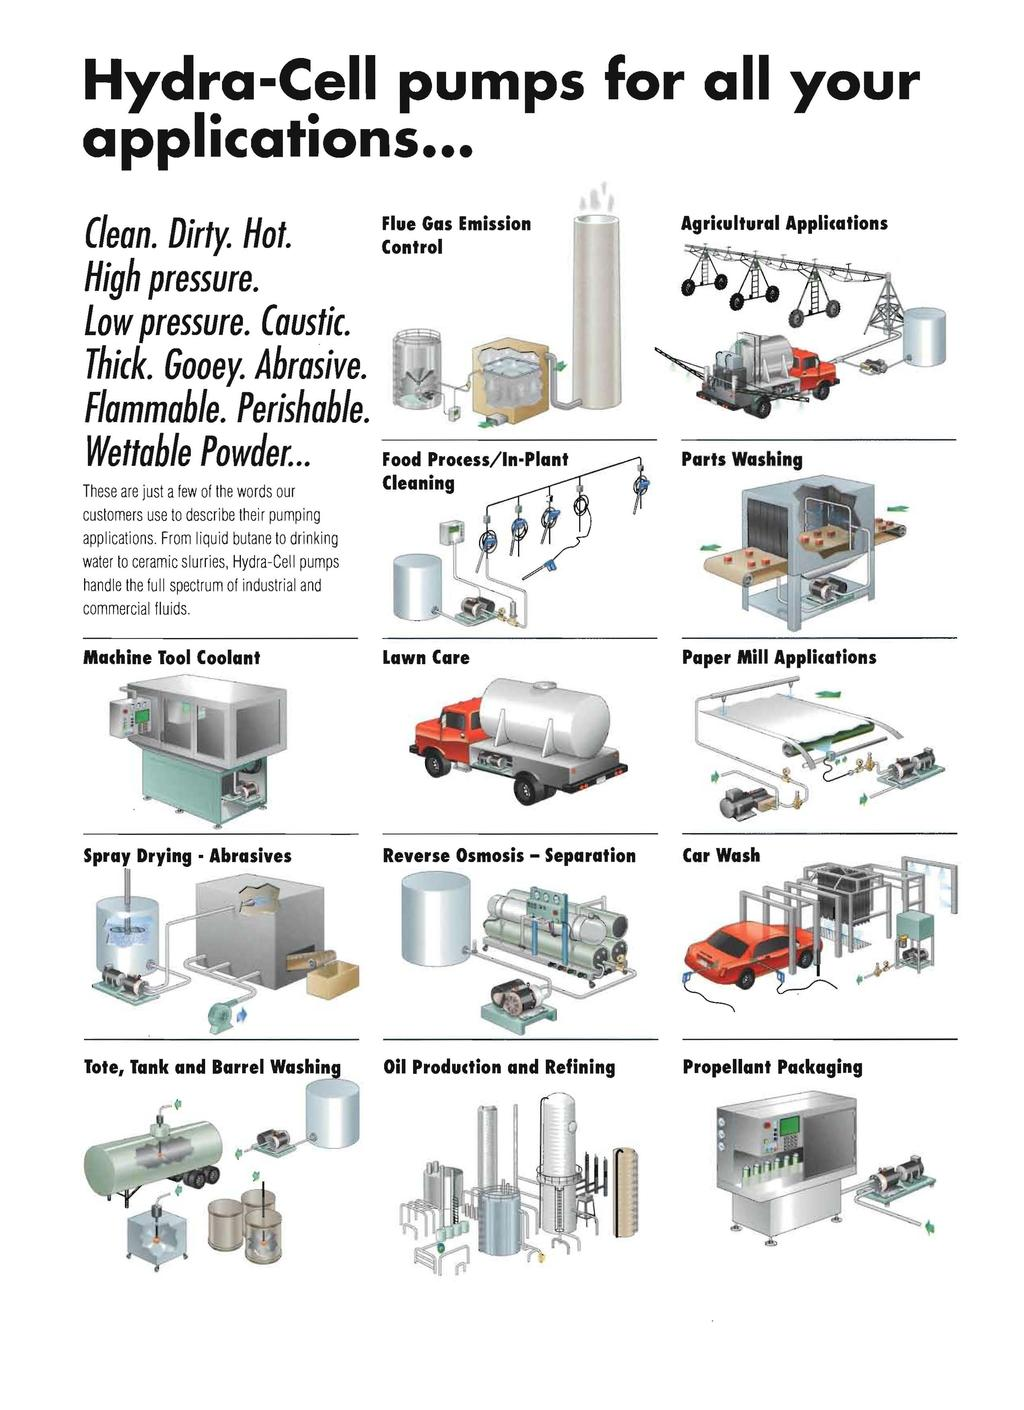 Hydra-Cell pumps for all your applications Clean. Dirty. Hot. High pressure. Low pressure. Caustic. Thick. Gooey. Abrasive. Flammable. Perishable. Wettable Powder.